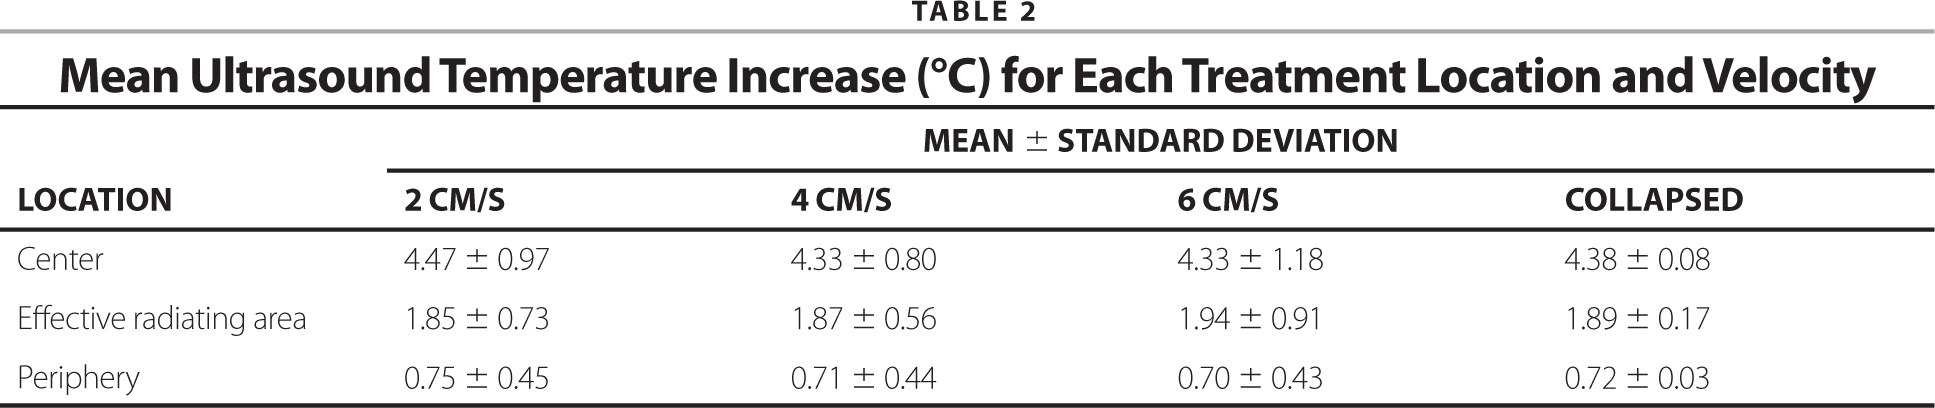 Mean Ultrasound Temperature Increase (°C) for Each Treatment Location and Velocity